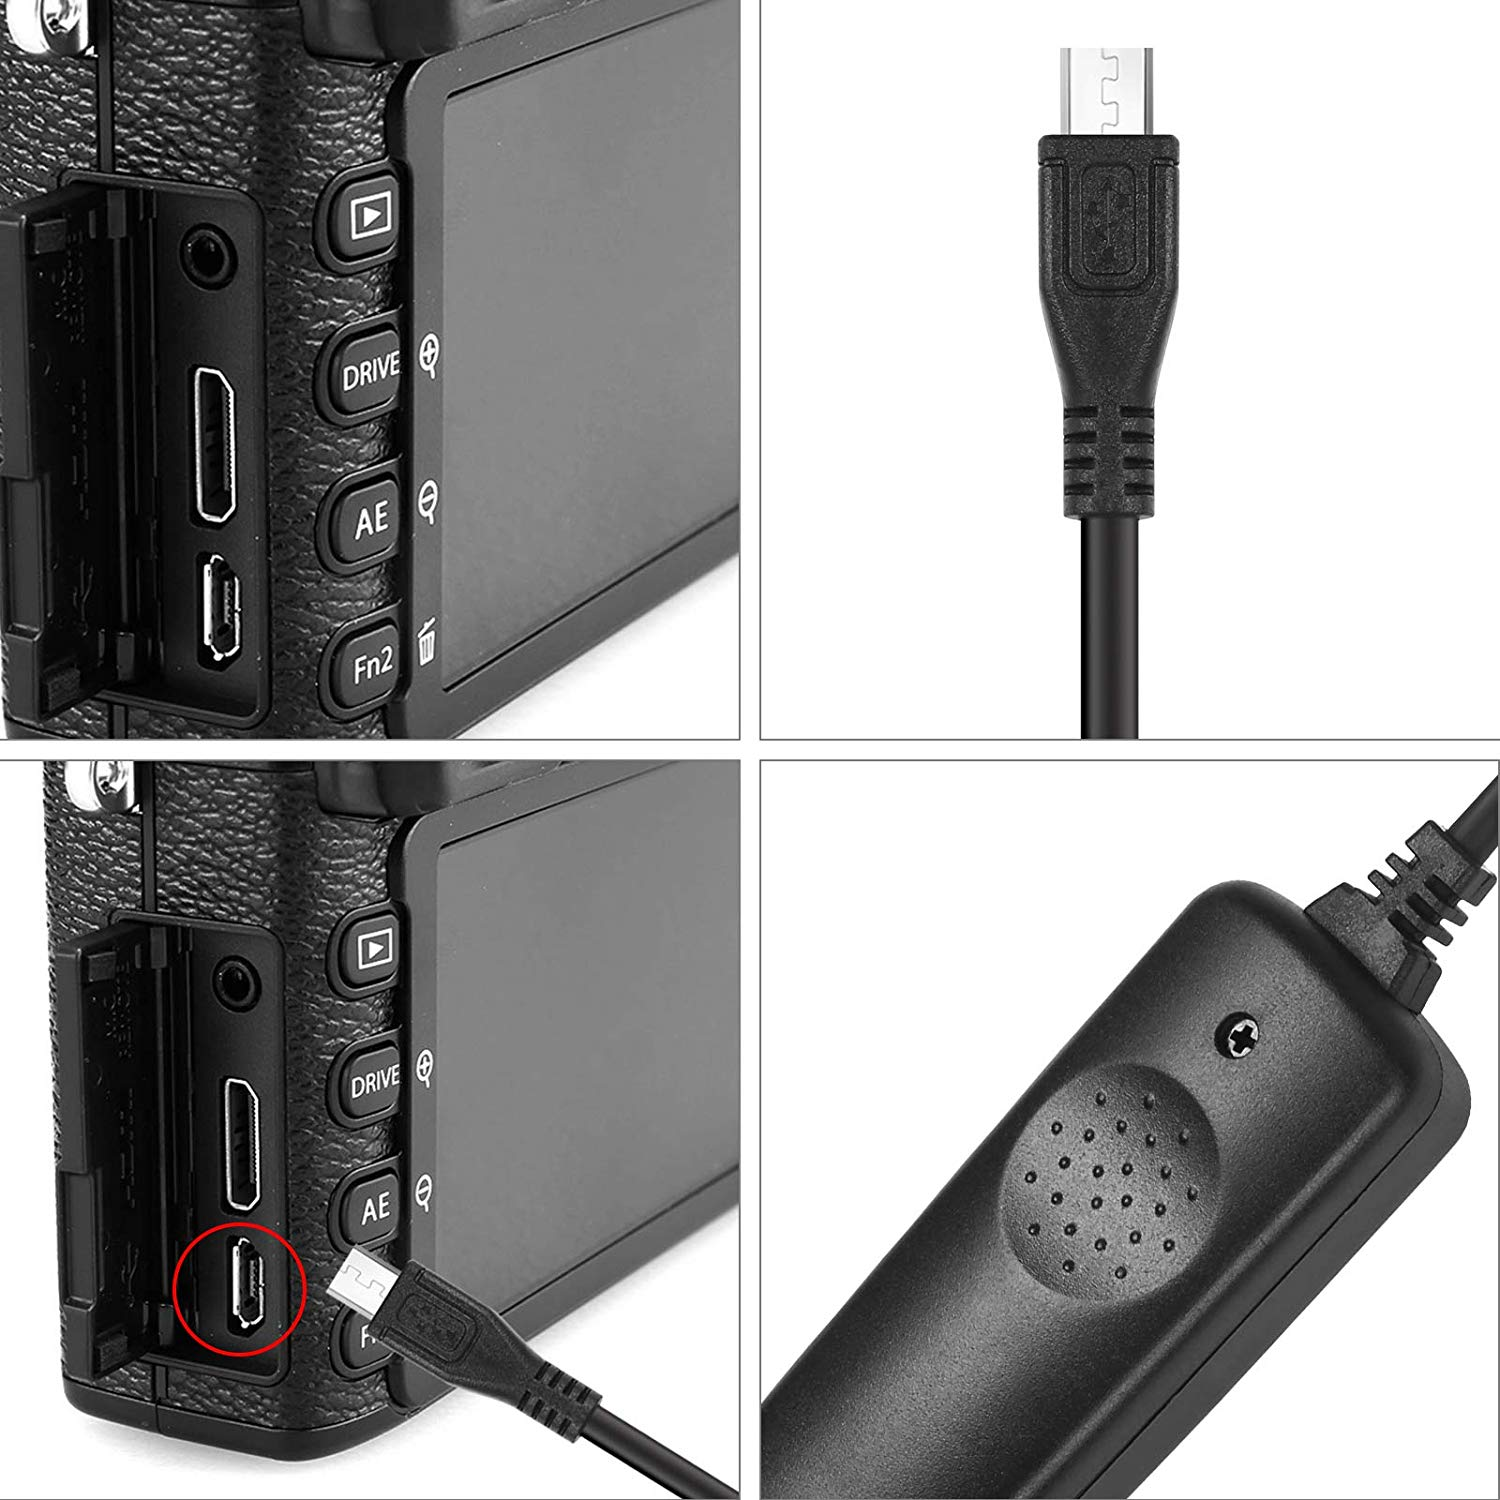 Shutter Release Cable Cord Wired Remote Control RR90 for Fuji X100,XE2, XA1/2/3/5/10, XT10,XT20